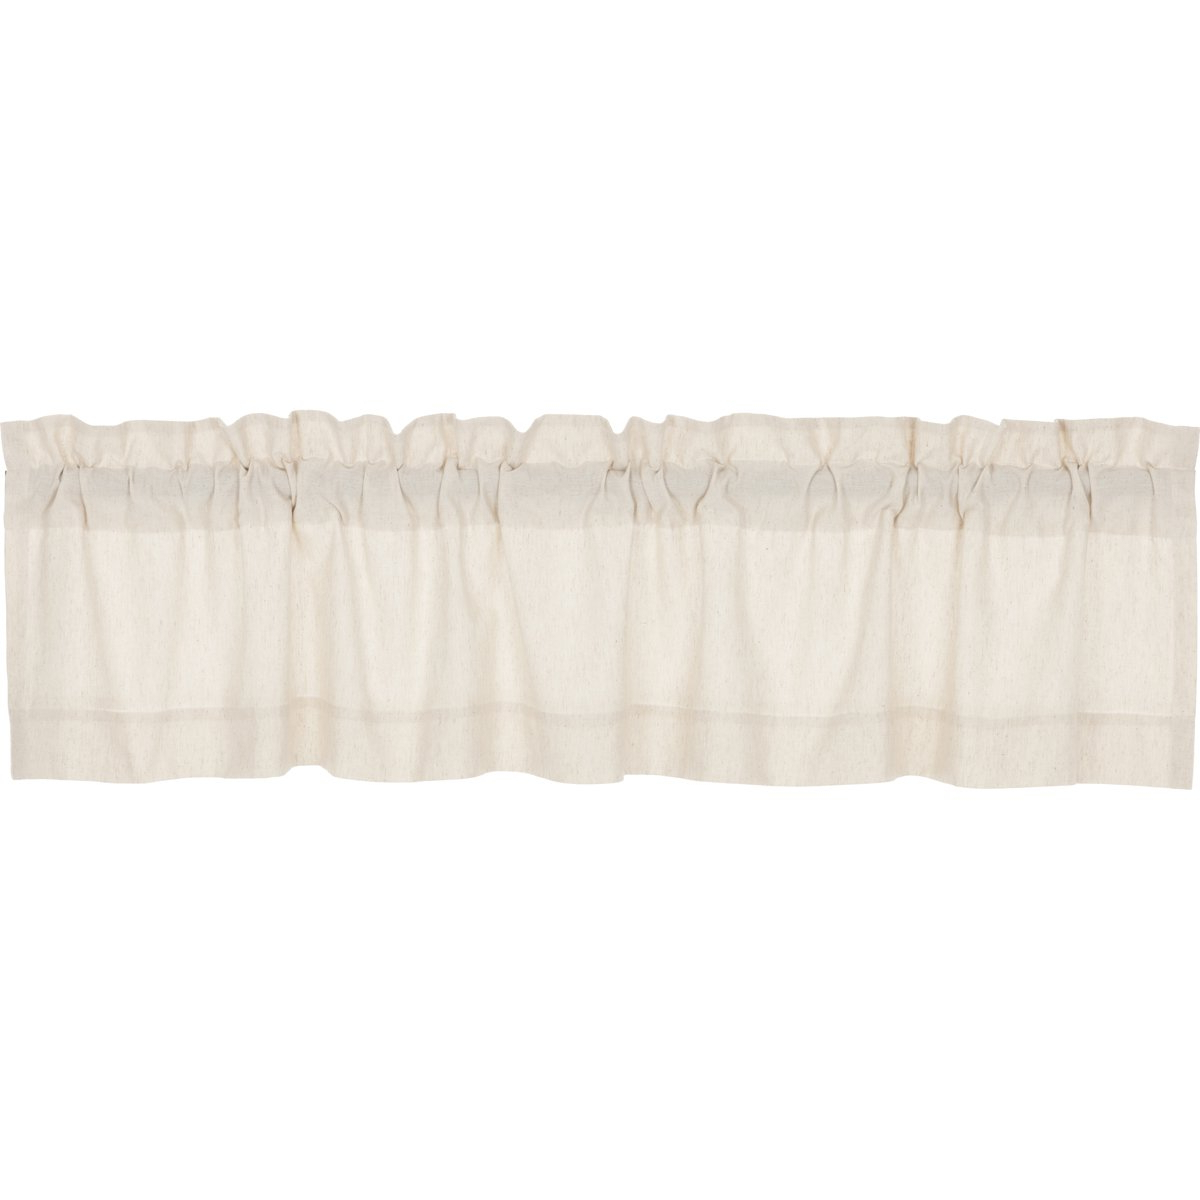 Vhc Brands Farmhouse French Country Curtains Simple Life Flax Solid  Valance, 16 L X 72 W, Natural Pertaining To Well Known Simple Life Flax Tier Pairs (View 19 of 20)